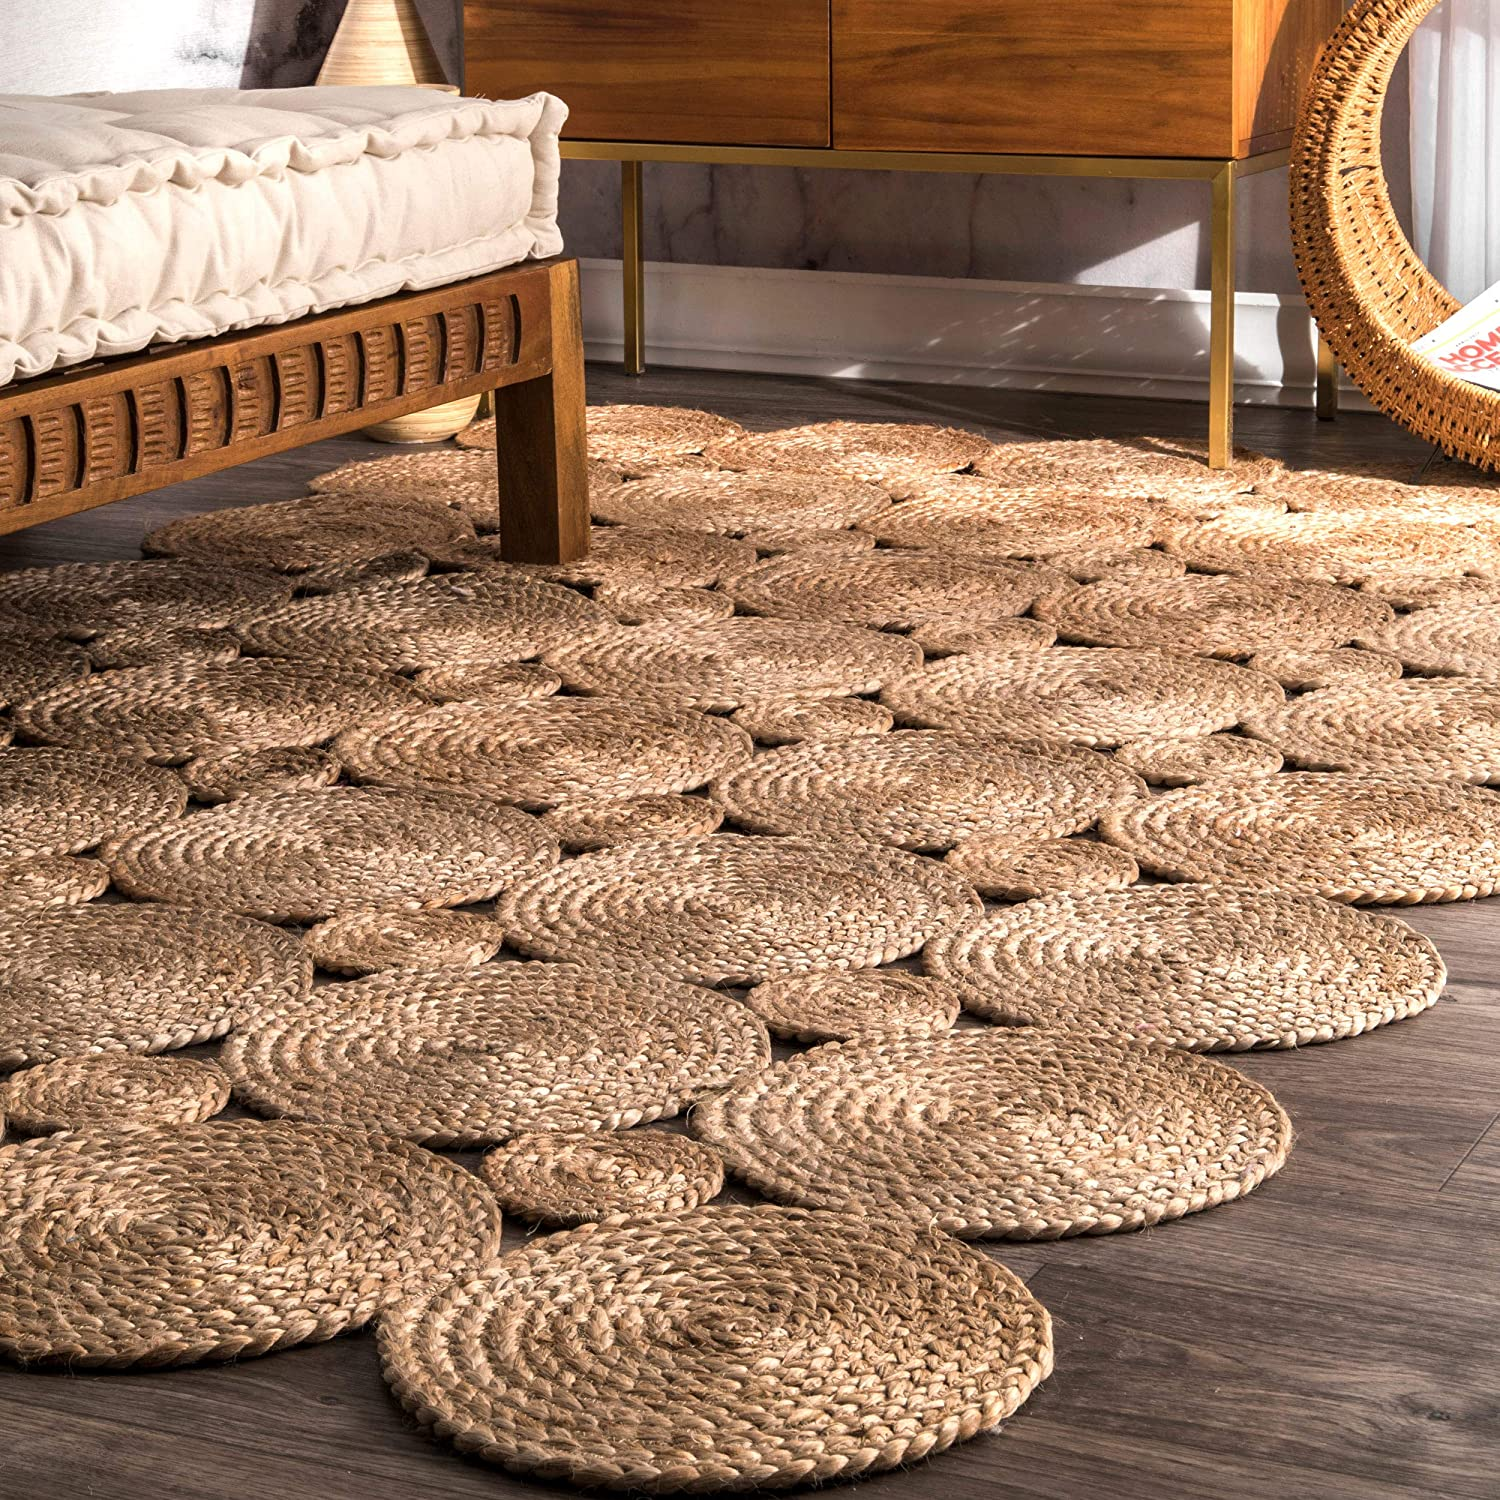 Louisville-Jefferson County Mall nuLOOM Drusilla Hand Woven Credence Jute Area x 6' Rug 9' Natural